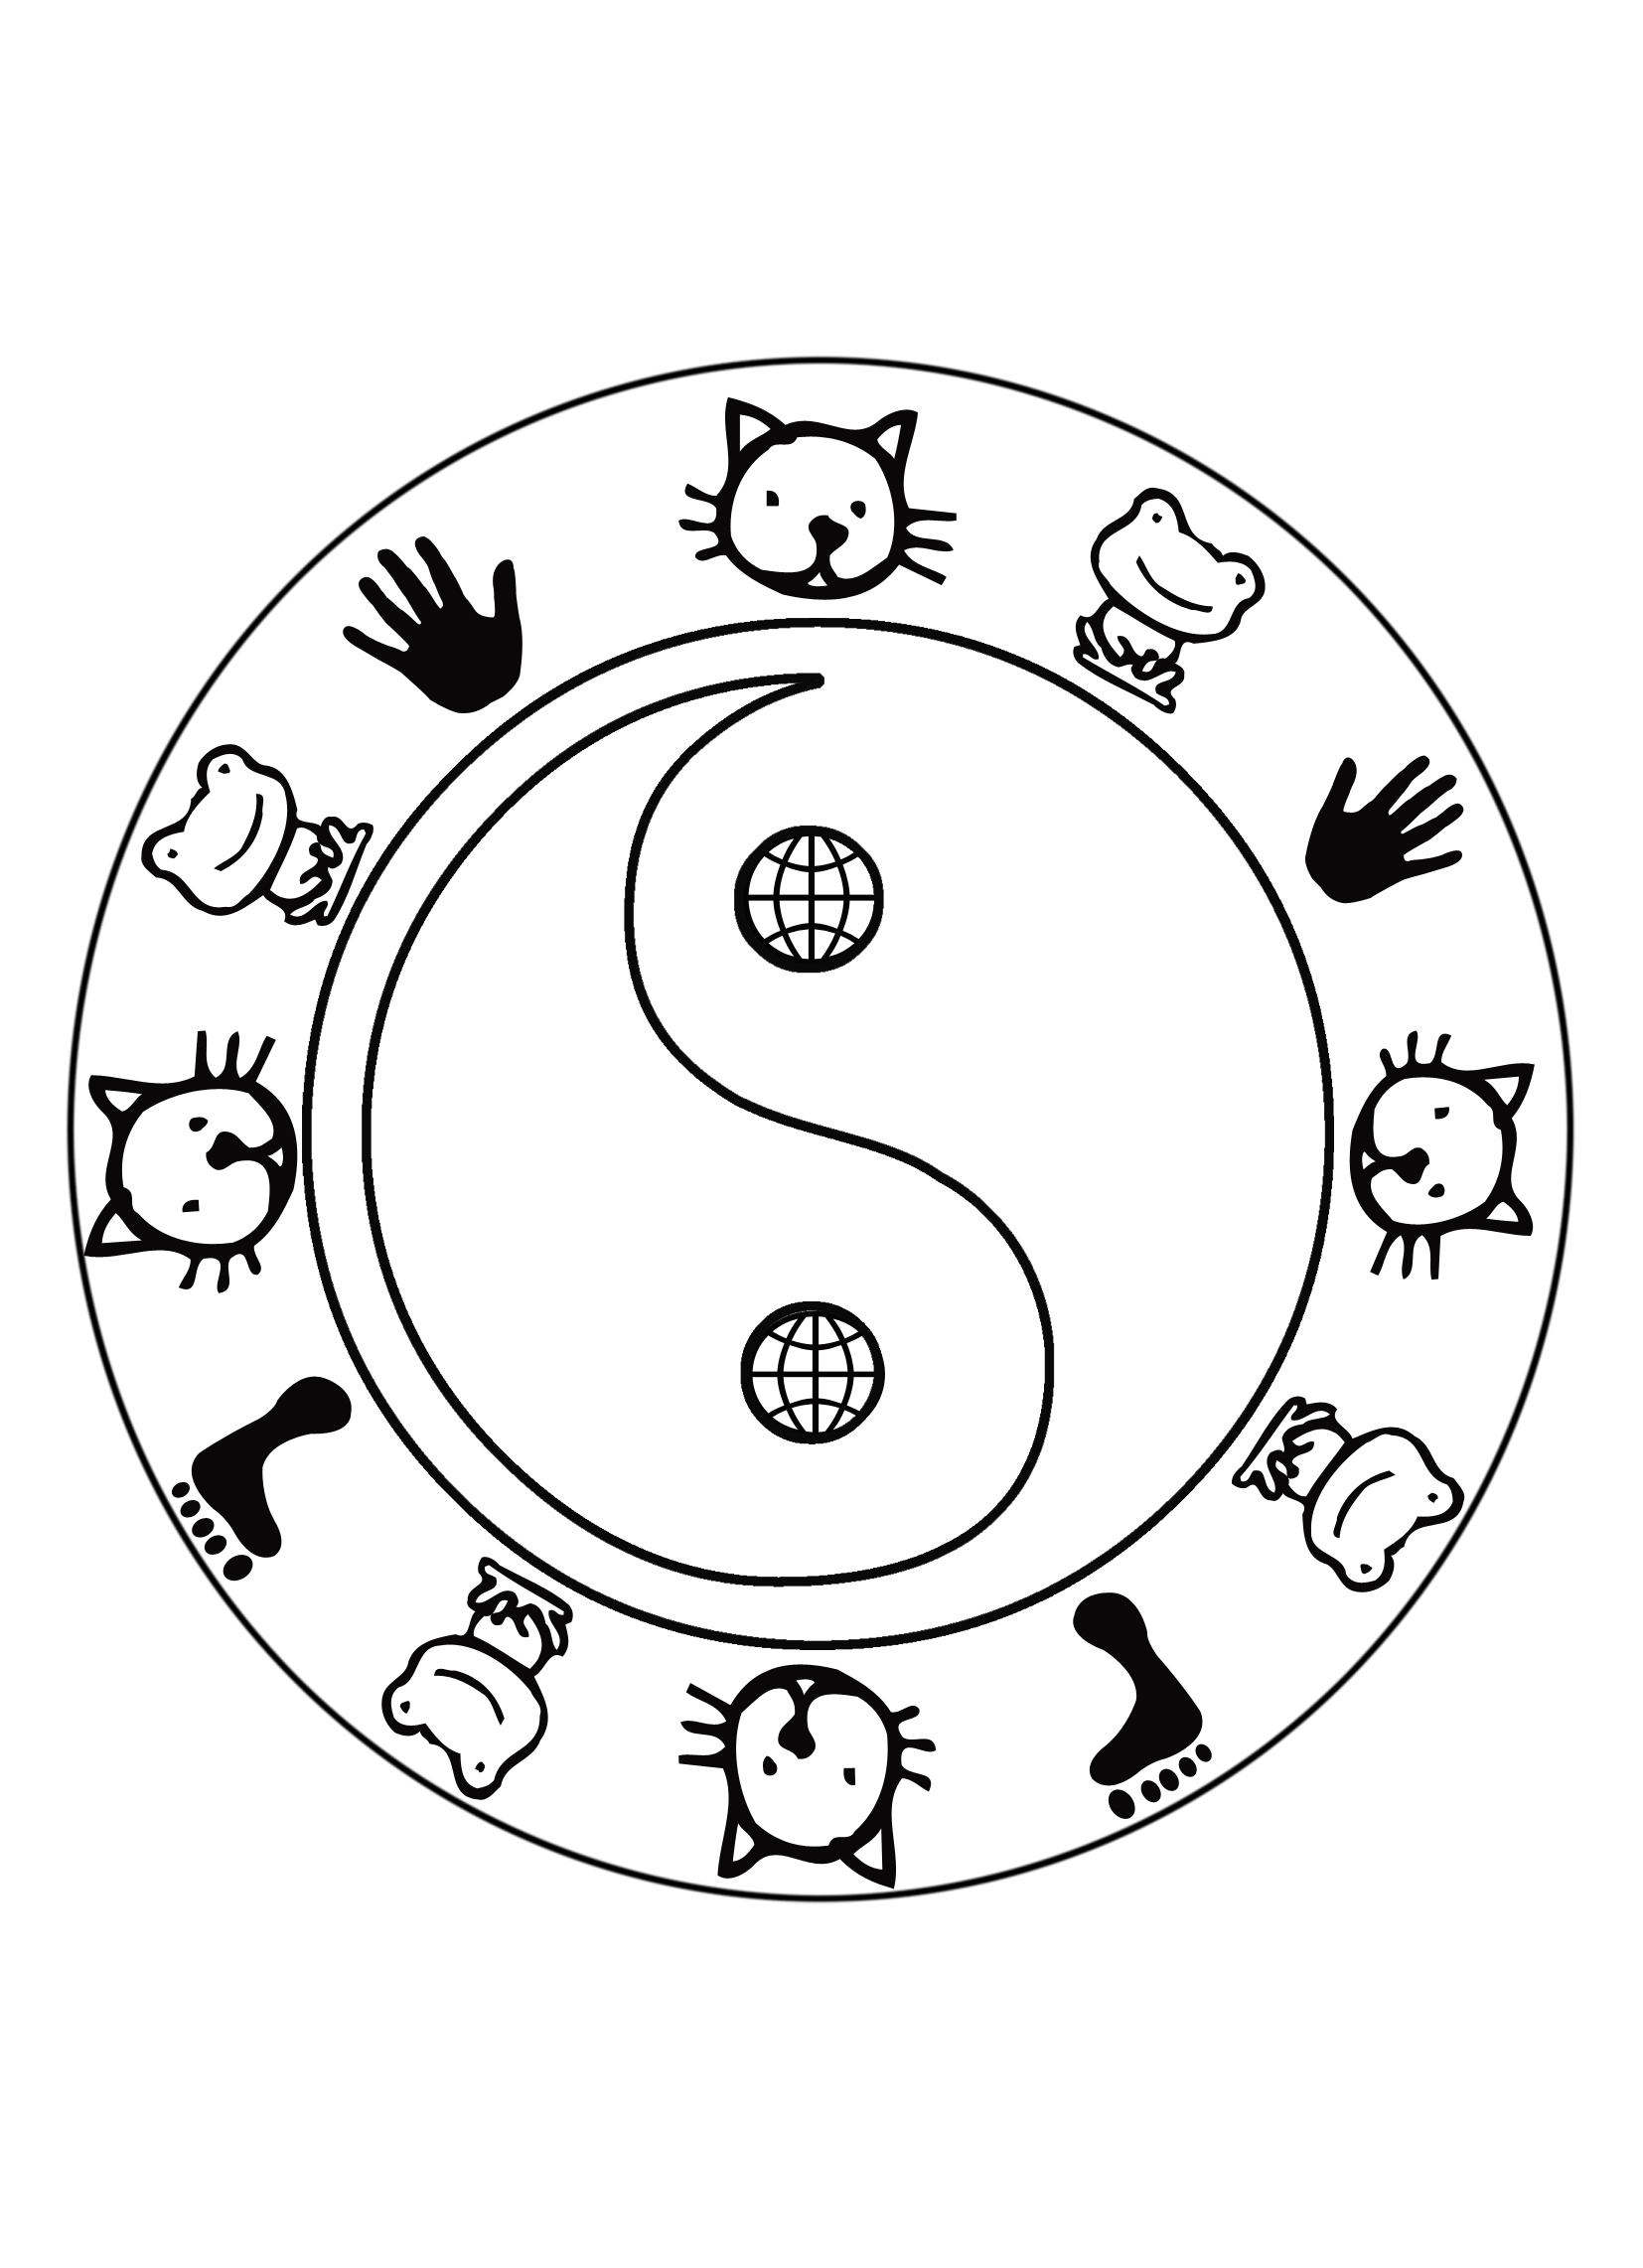 Ying yang mandala coloring pages coloring pages for Ying yang coloring pages